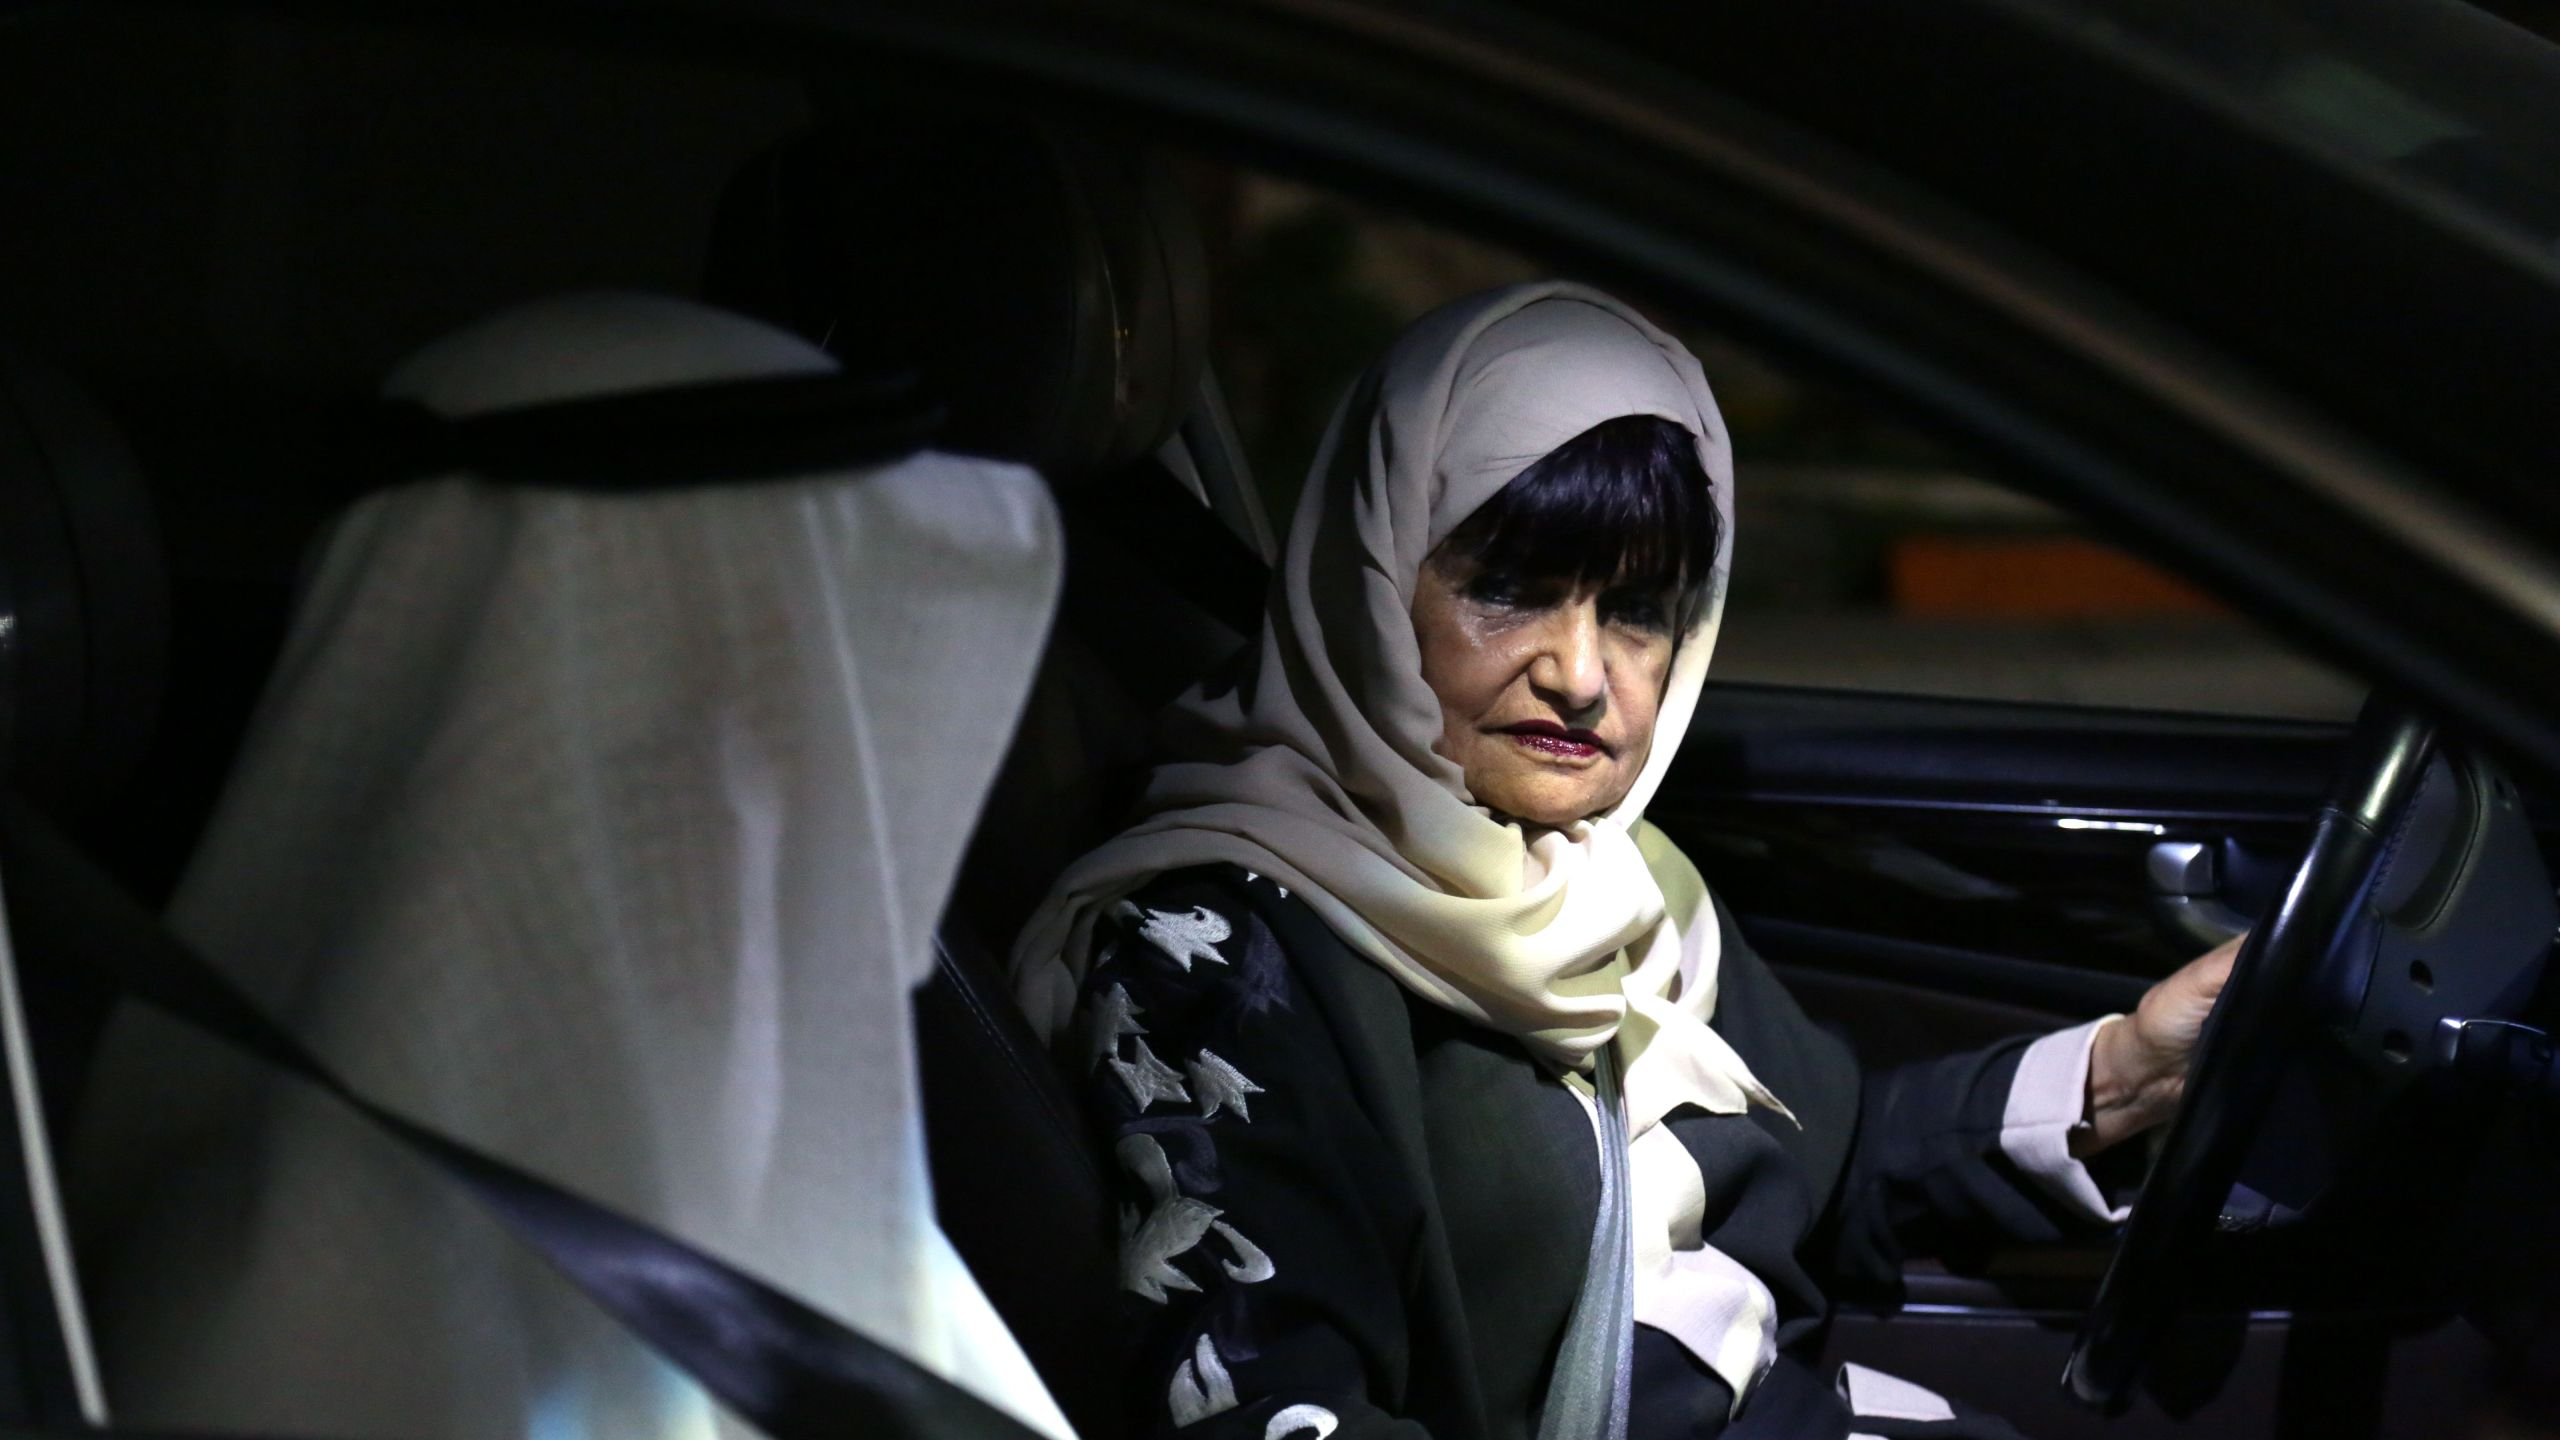 Munirah al-Sinani, a 72-year-old Saudi woman, accompanied by her husbad, is pictured in her car in the eastern Saudi city of Dhahran on June 11, 2019. Until June 24, 2018, driving for women would have been considered a crime in Saudi Arabia, where hardliners have preached for decades that allowing the act would promote gender mixing and promiscuity. (Credit: MOHAMMED AL-NEMER/AFP/Getty Images)